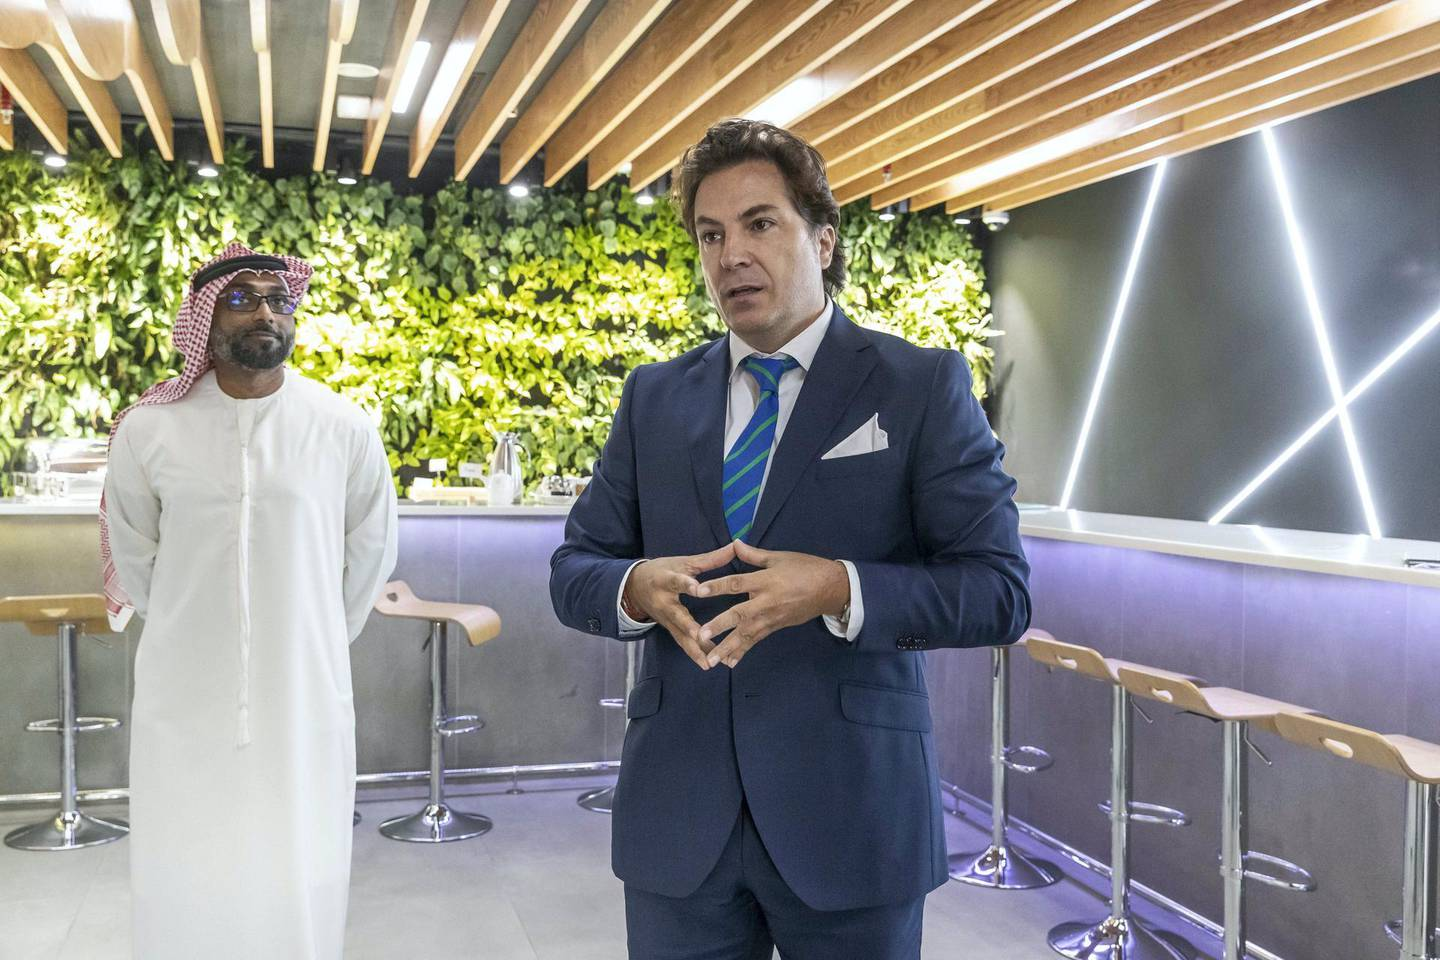 DUBAI, UNITED ARAB EMIRATES. 23 JANUARY 2019. Majid Al Futtain Retail Business School at Ibn Battuta Mall.  Miquel Povedano, COO of Carrefour Operations Excellence explains apsects of the school to the media. (Photo: Antonie Robertson/The National) Journalist: Alice Haine. Section: Business.